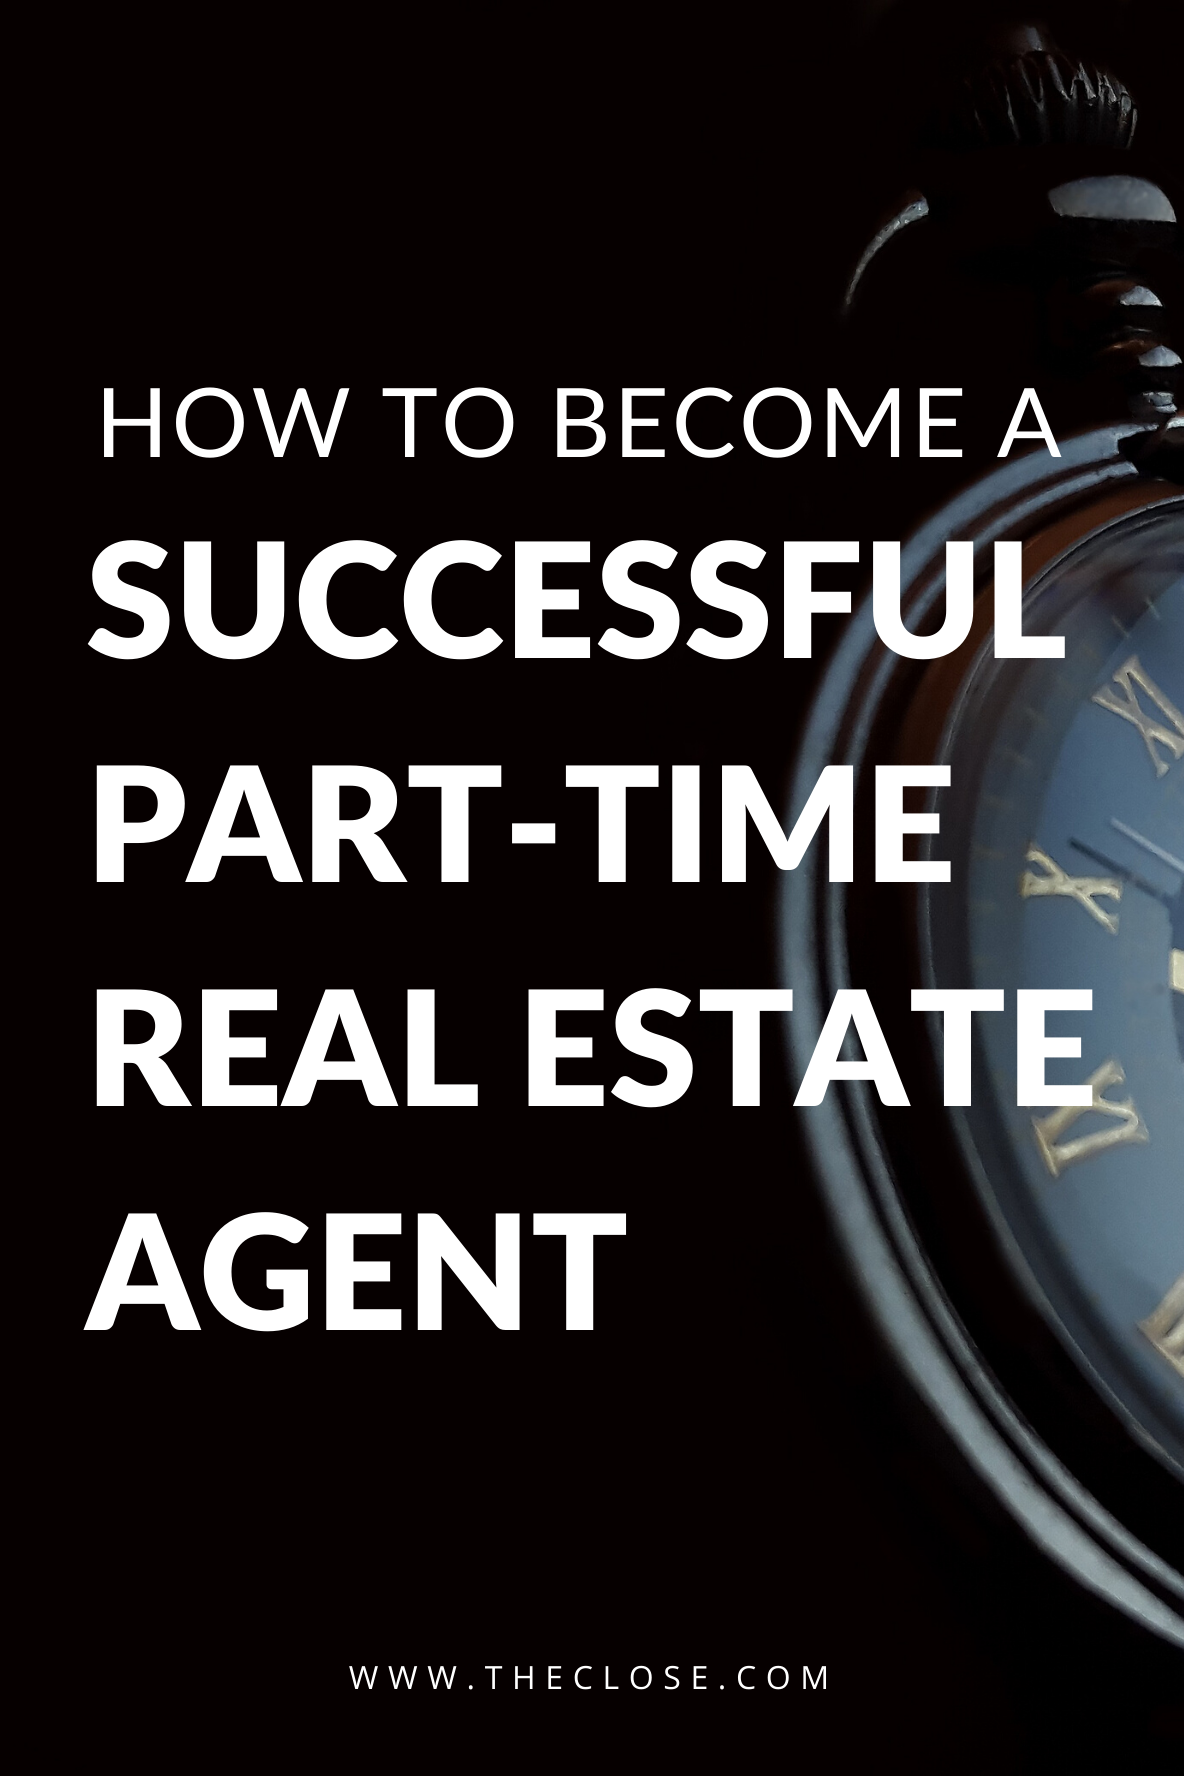 How to Become a Successful Part-Time Real Estate Agent